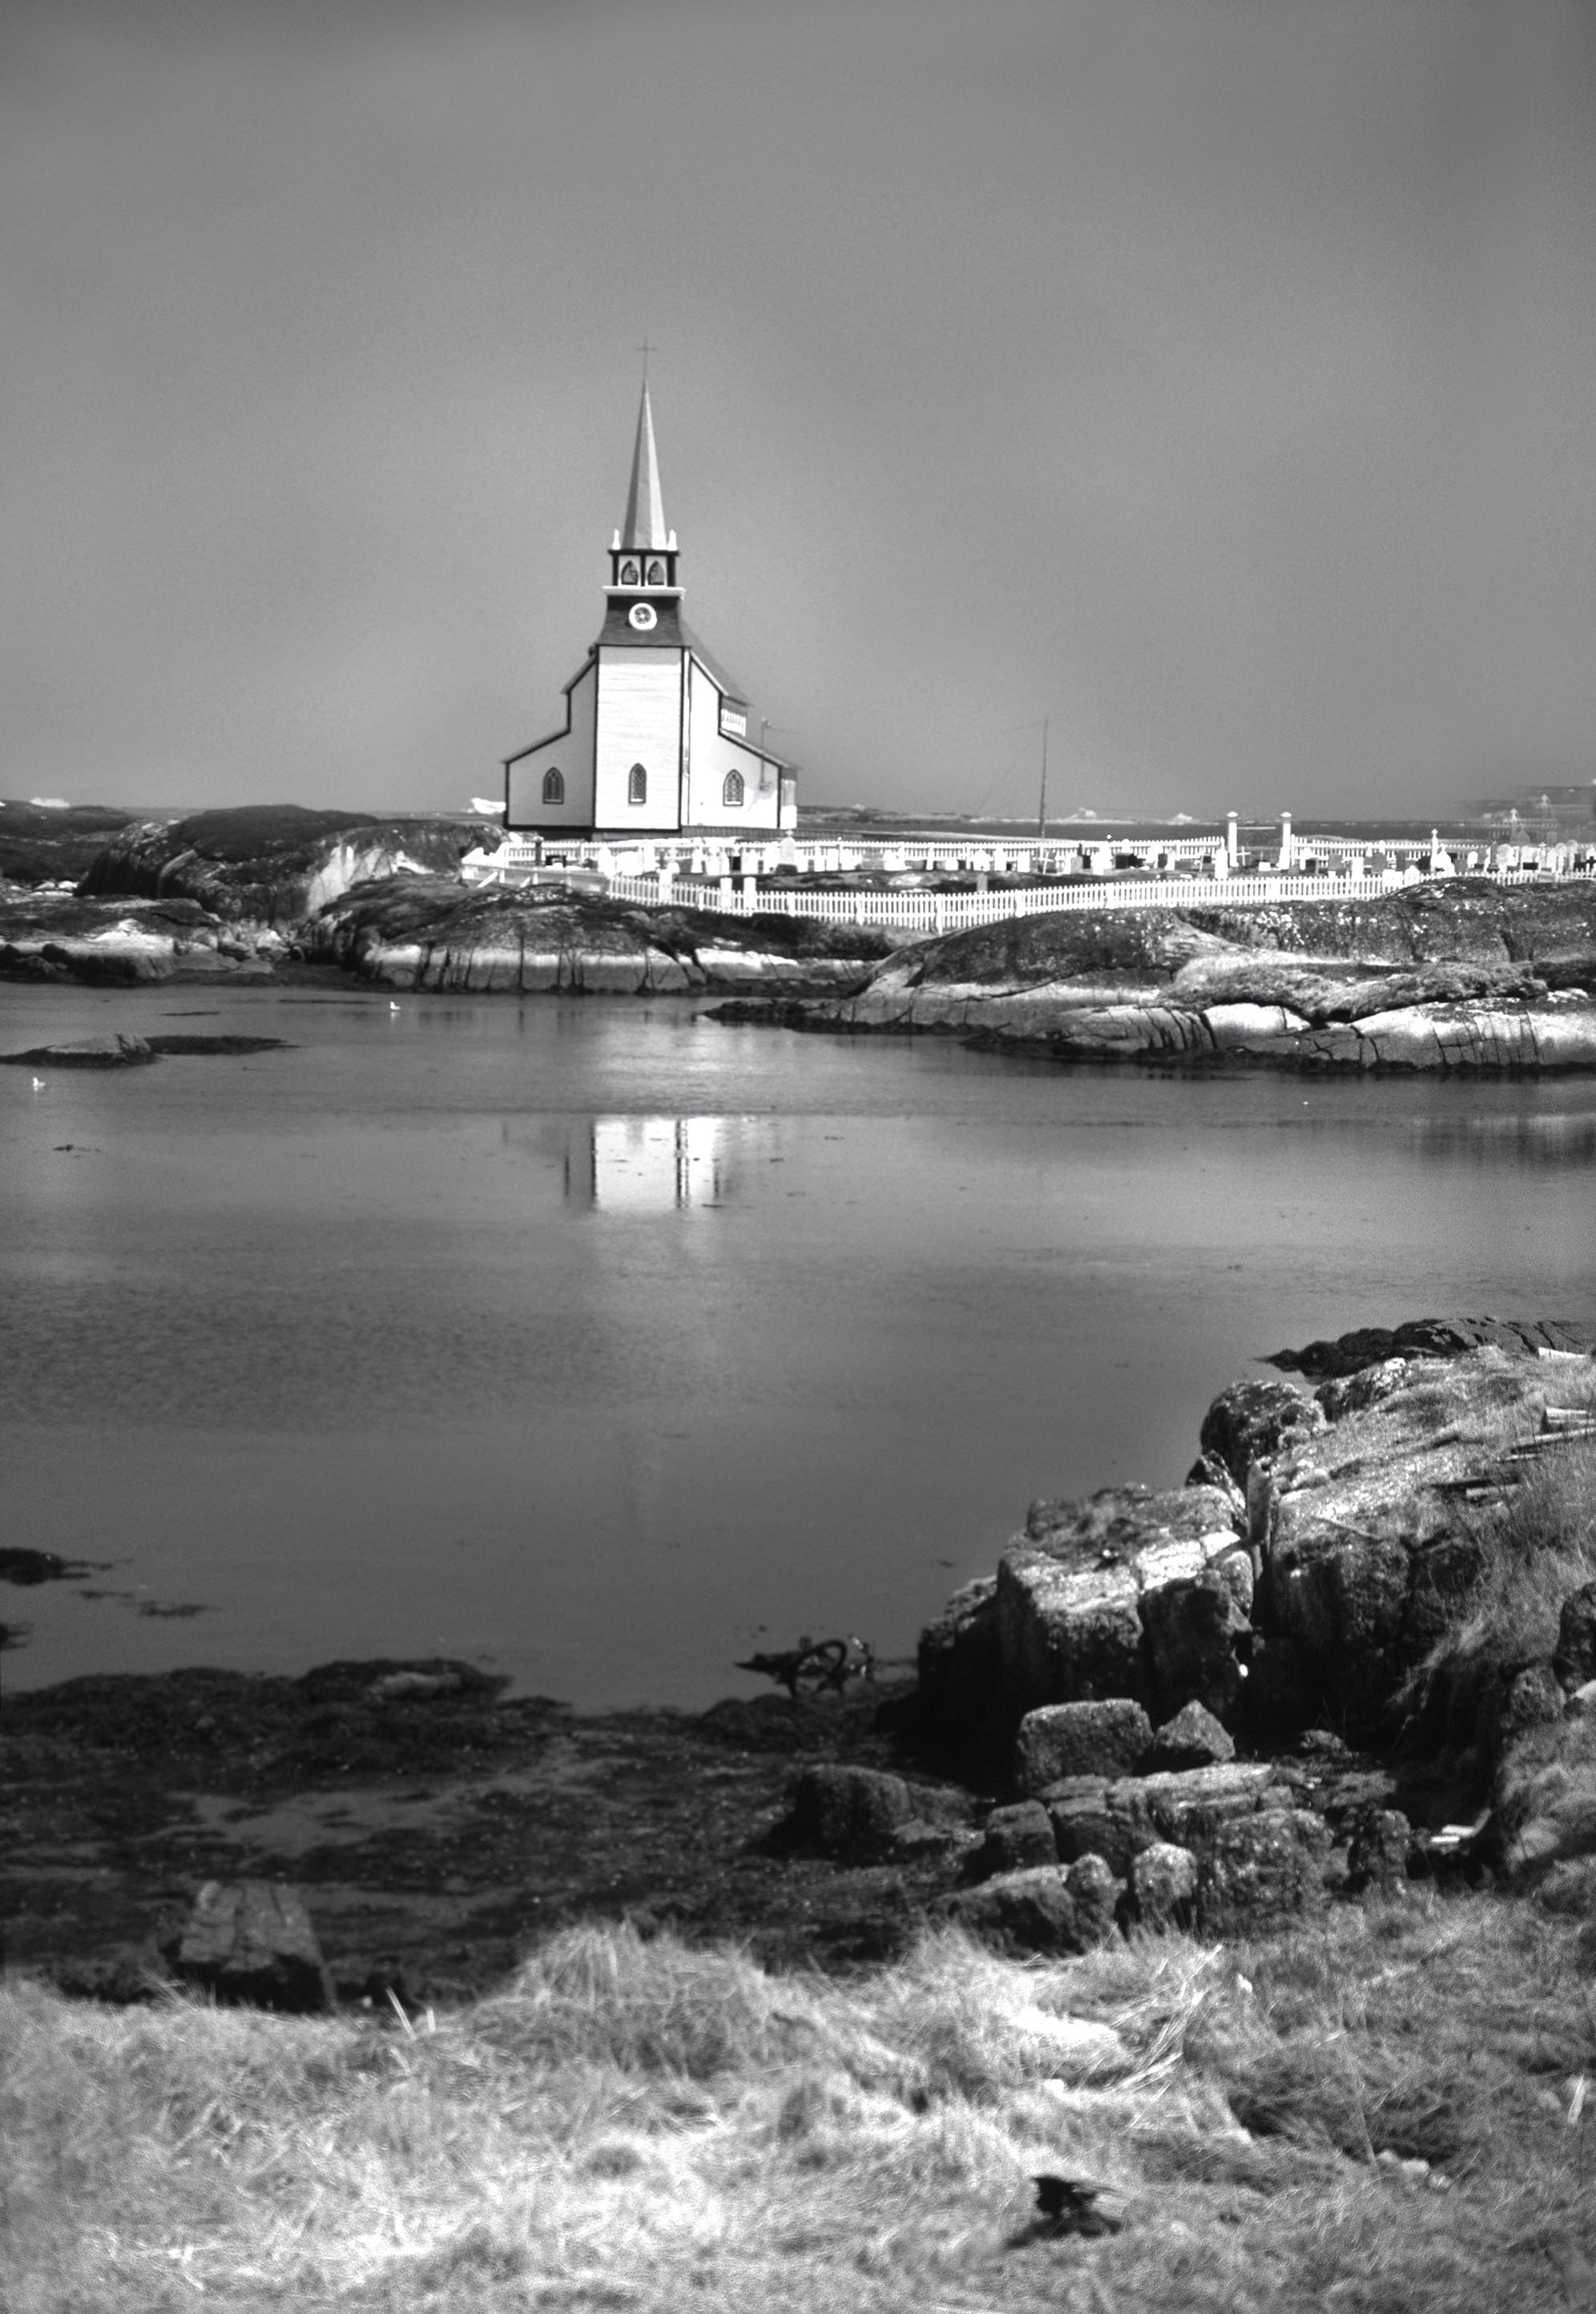 White Church Next to Body of Water